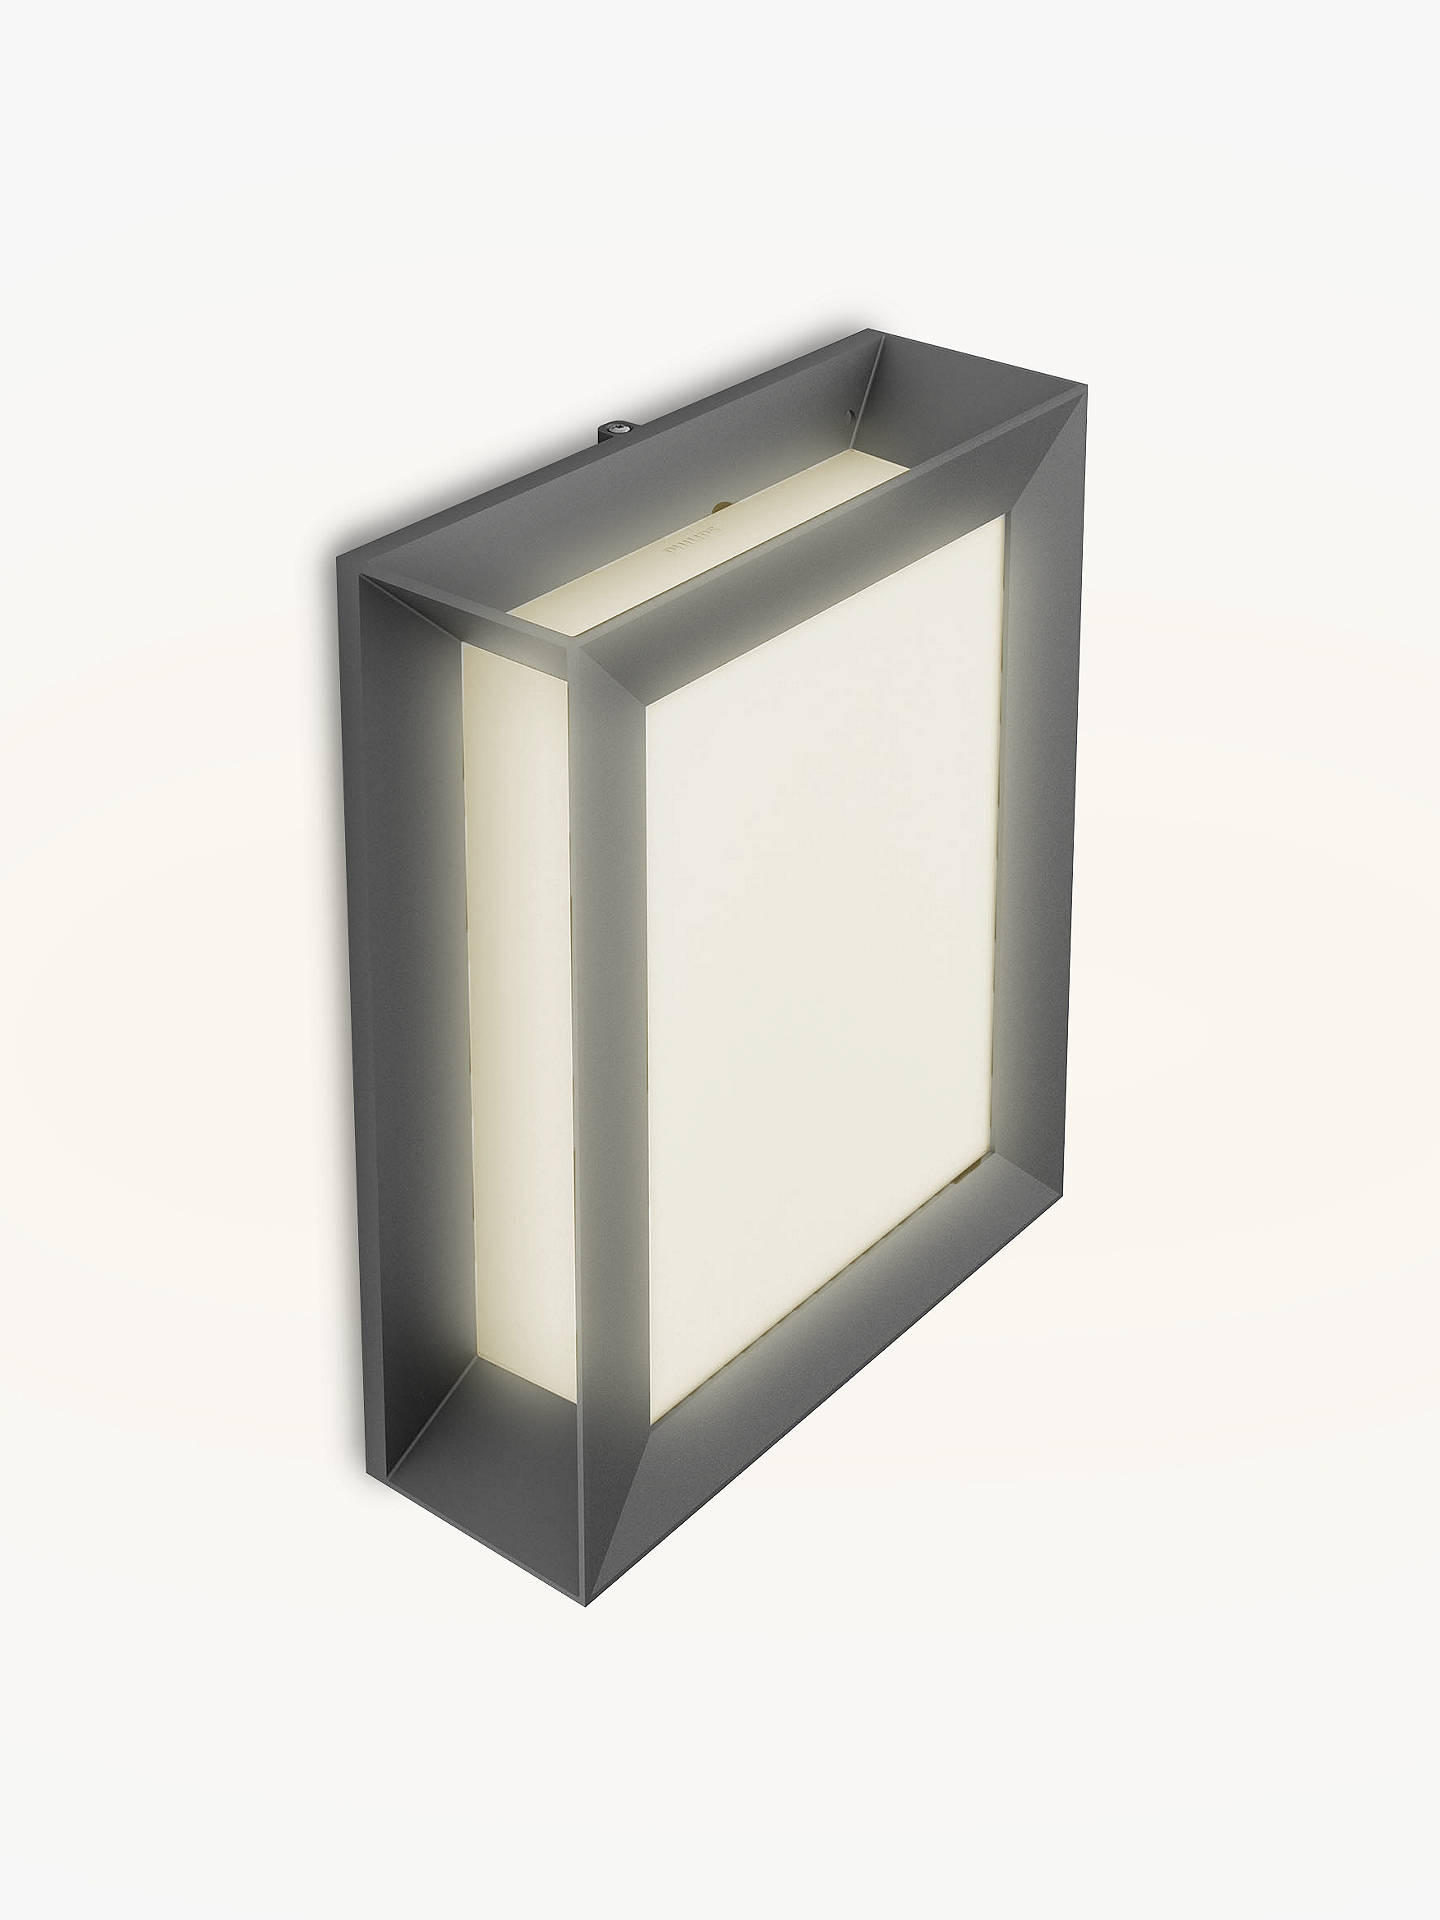 Buyphilips karp led outdoor wall light anthracite online at johnlewis com